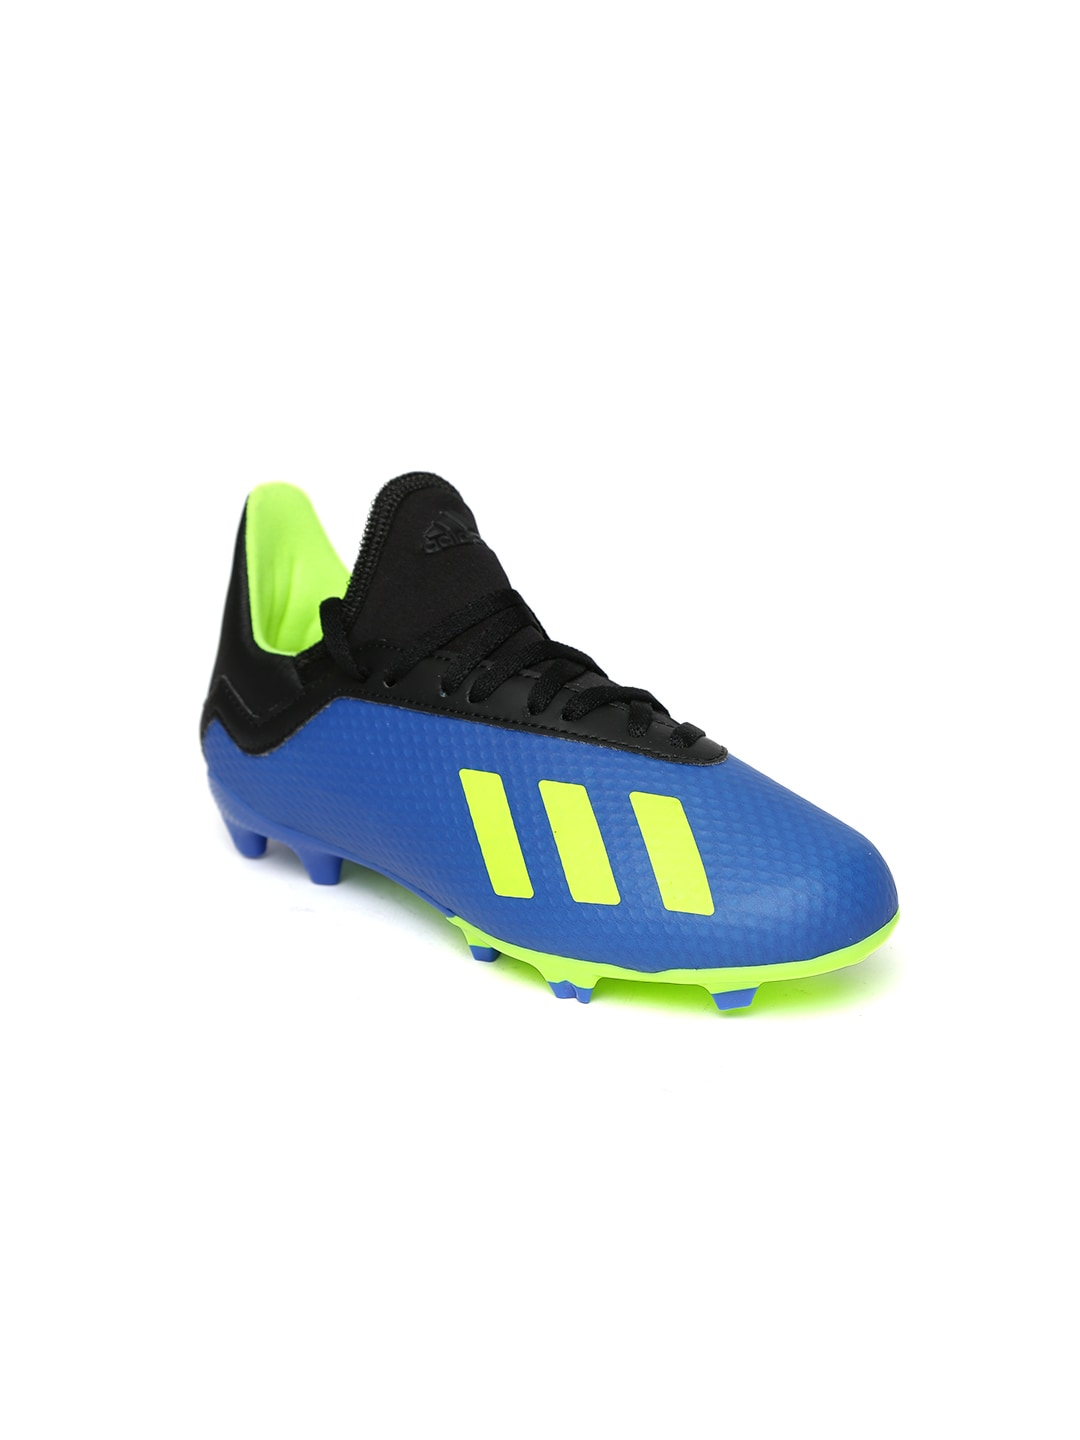 76d899a21 Boys Sports Shoes - Buy Sports Shoes For Kids Online in India